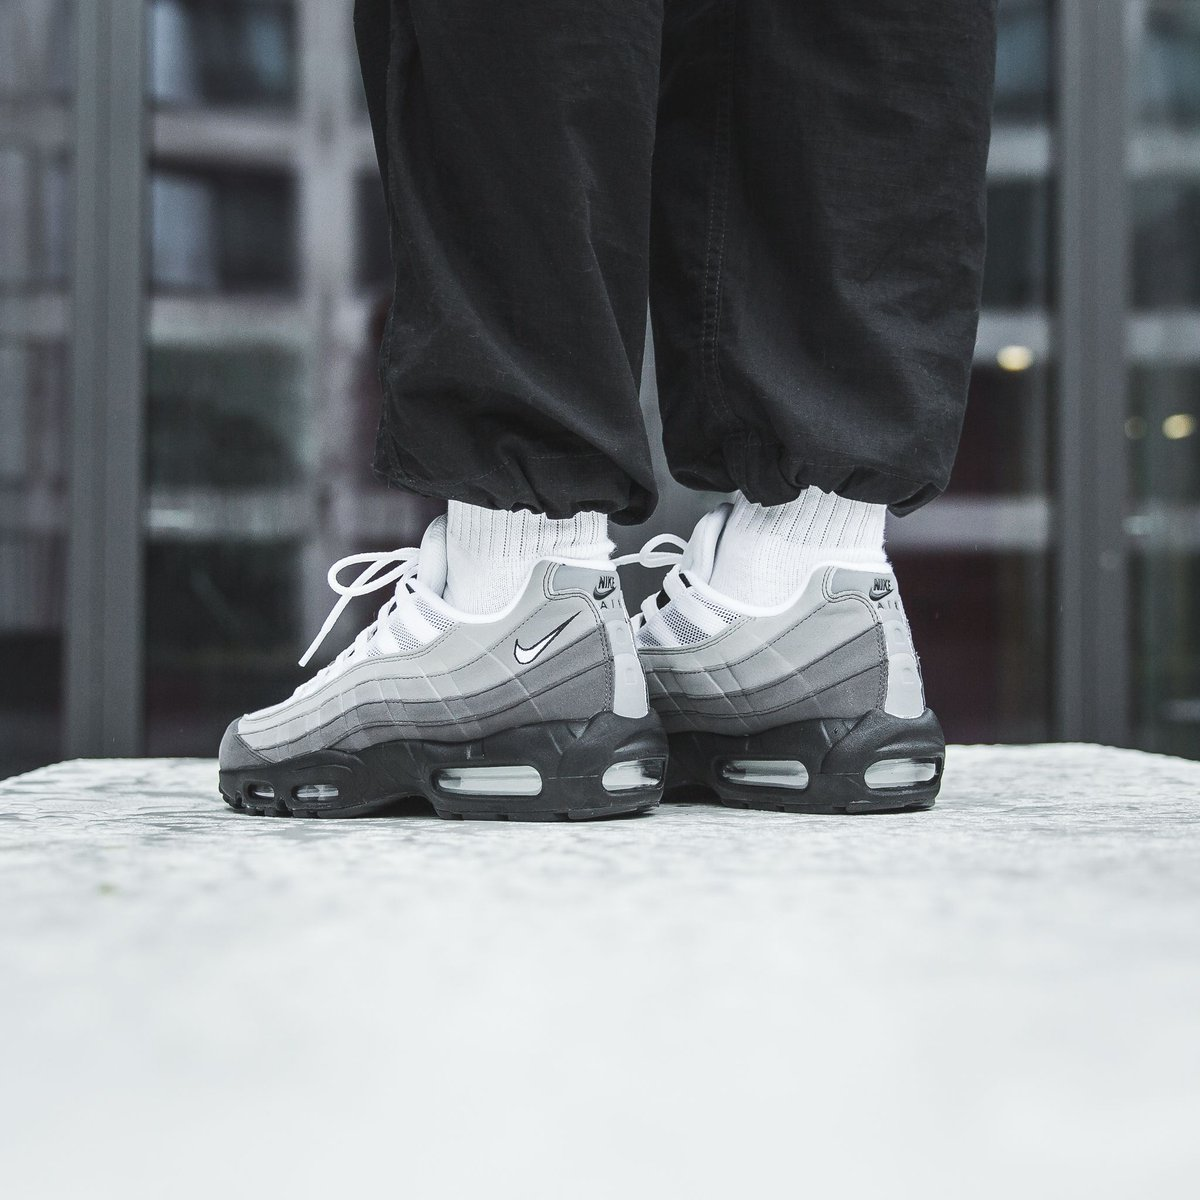 quality design 30e95 25a85 another 1 on sale ❗ Nike Air Max 95 Og - Black White-Granite